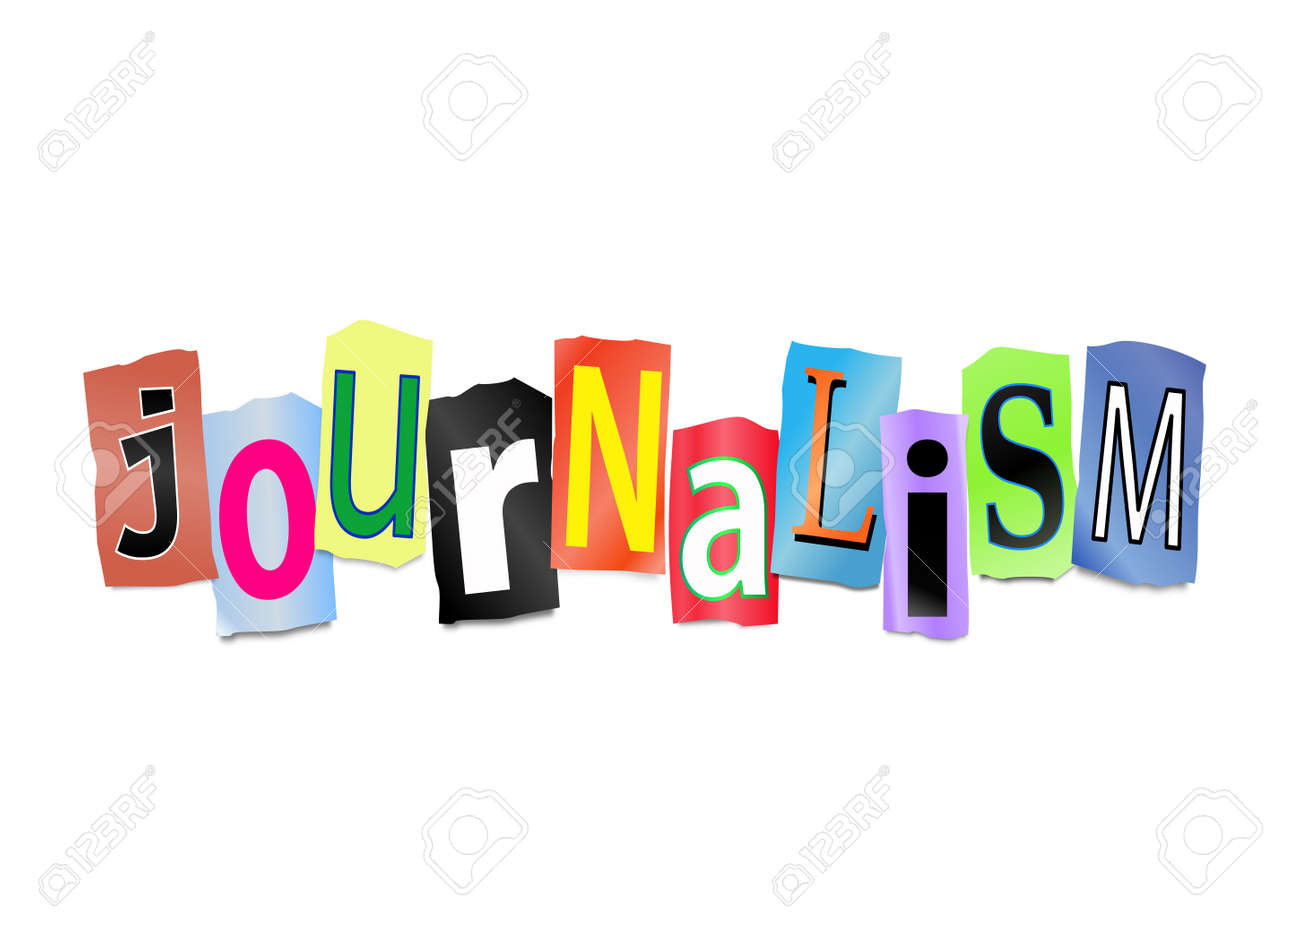 Illustration depicting cut out letters arranged to form the word journalism. Stock Photo - 19219263